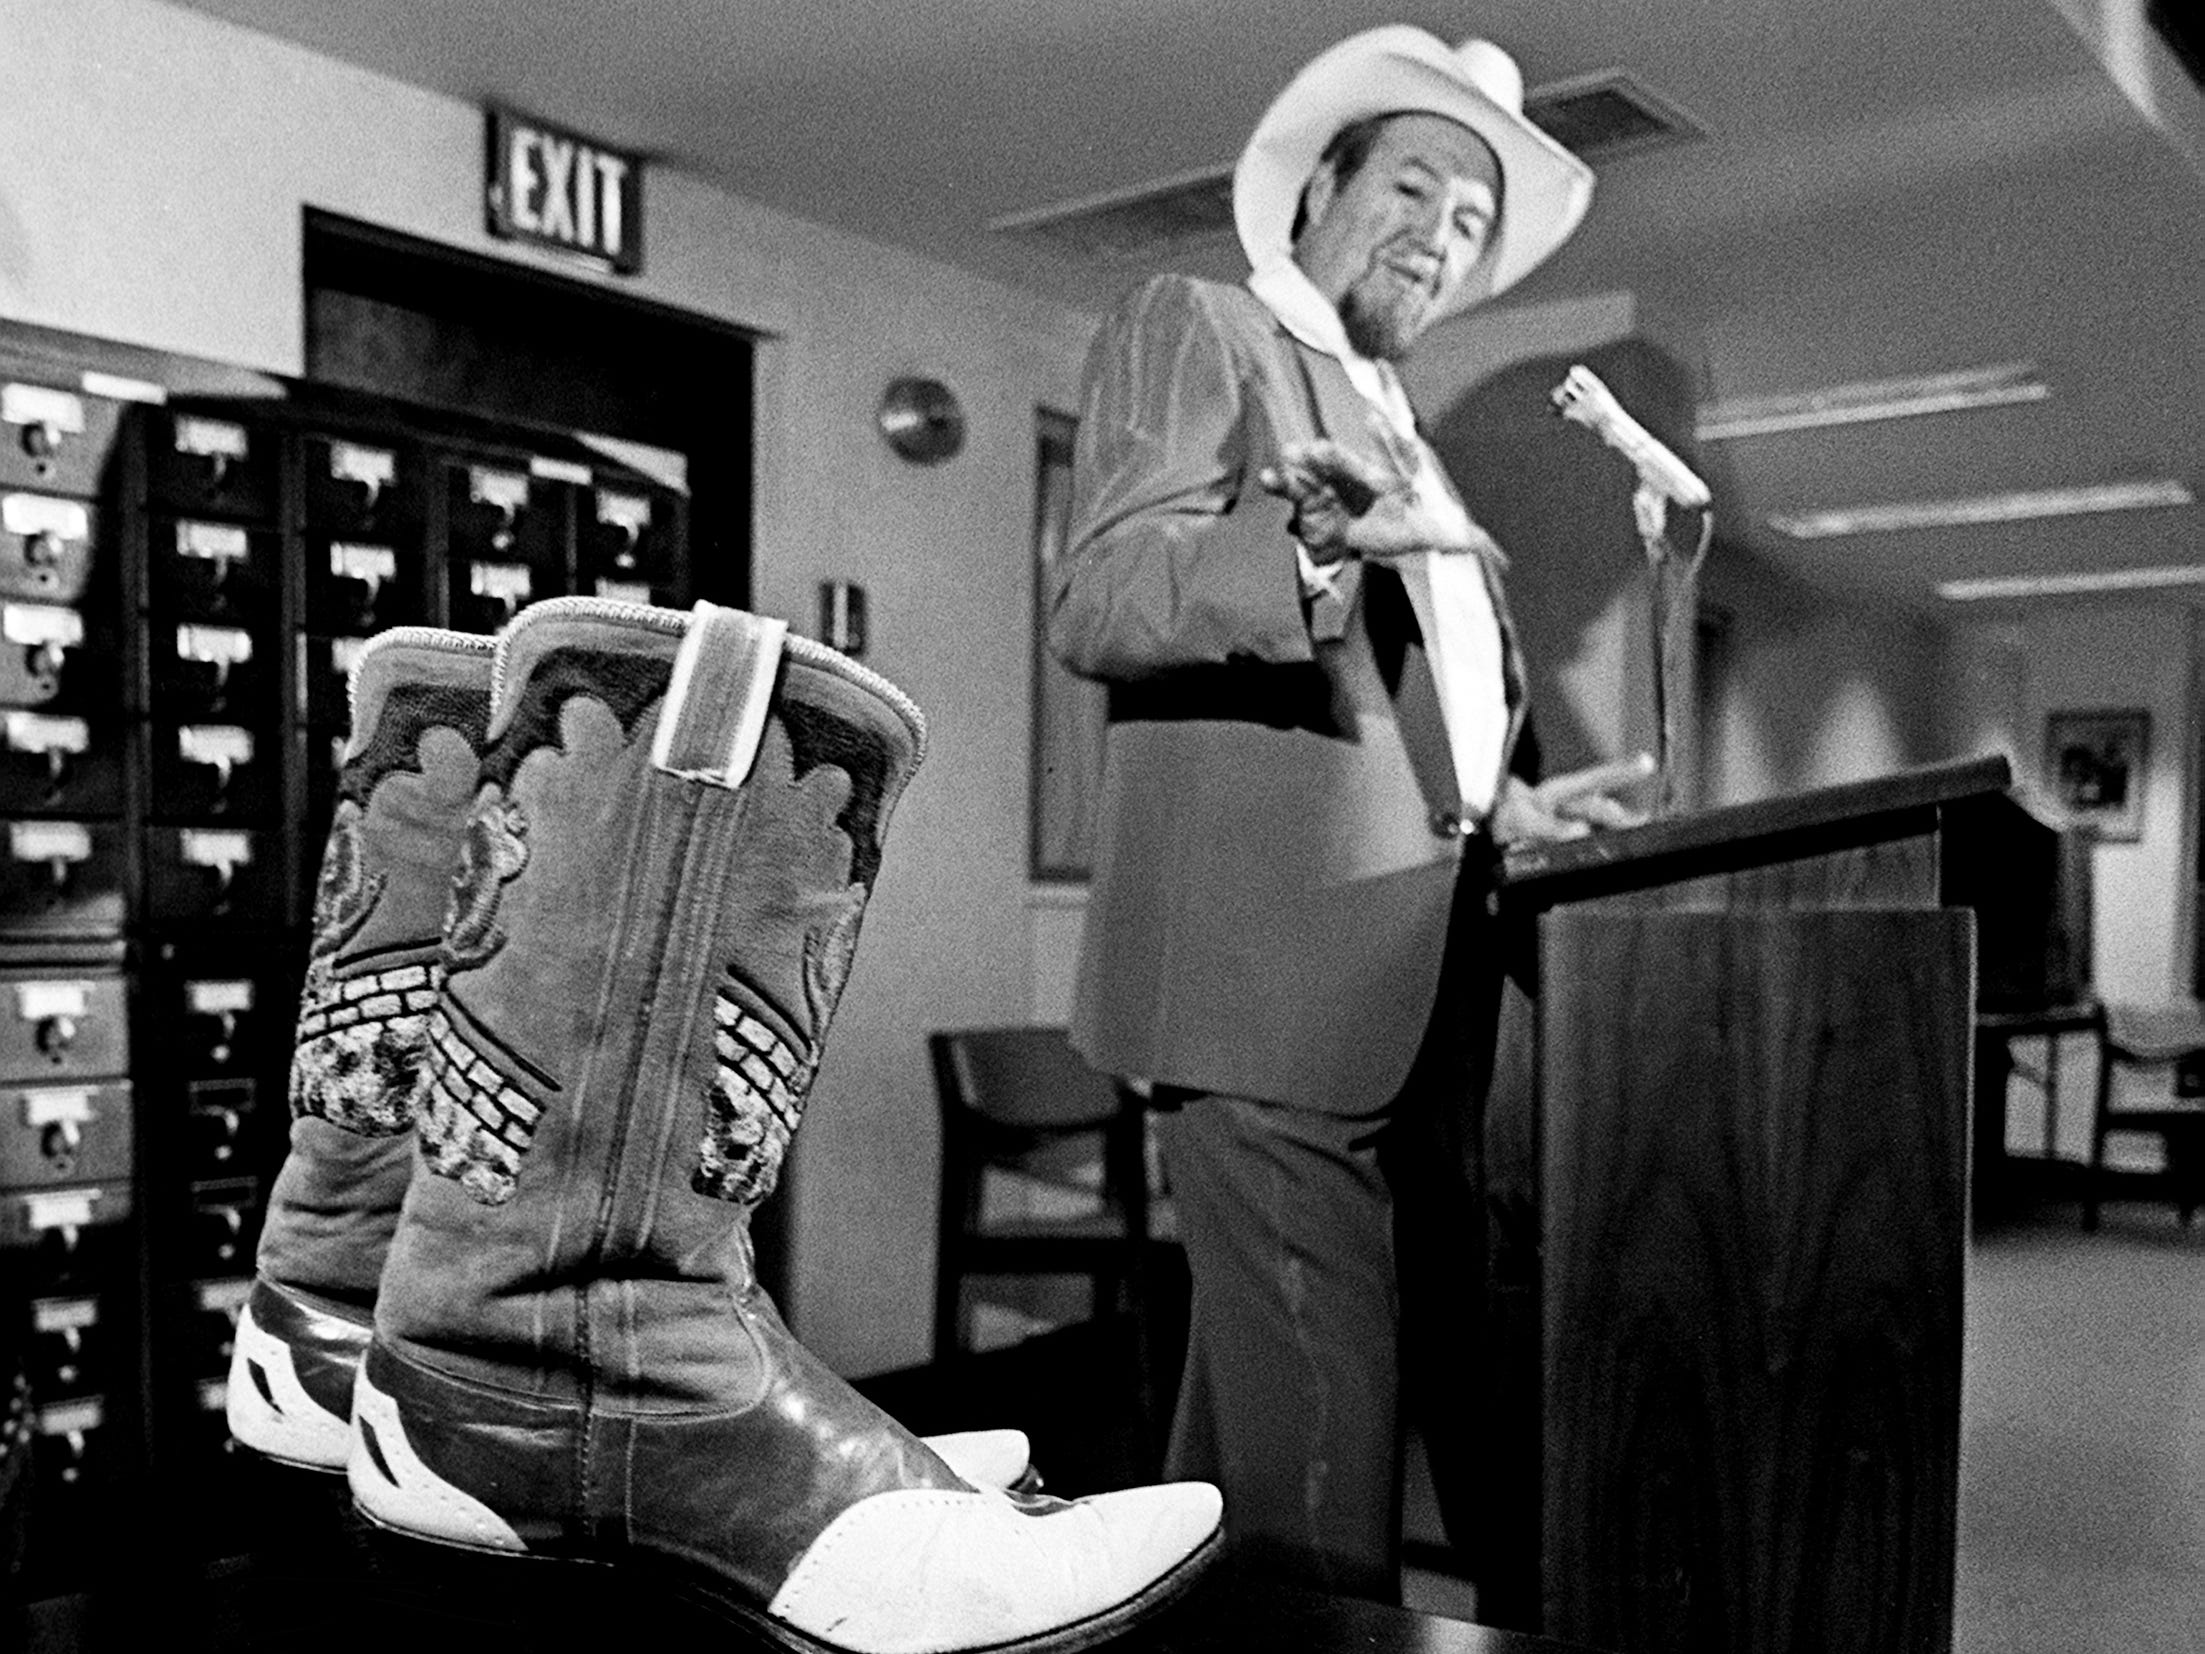 Country music star Hank Thompson, next to some of the items from his long career, speaks during a news conference Sept. 20, 1988. He is giving the items to the Country Music Hall of Fame and Museum.